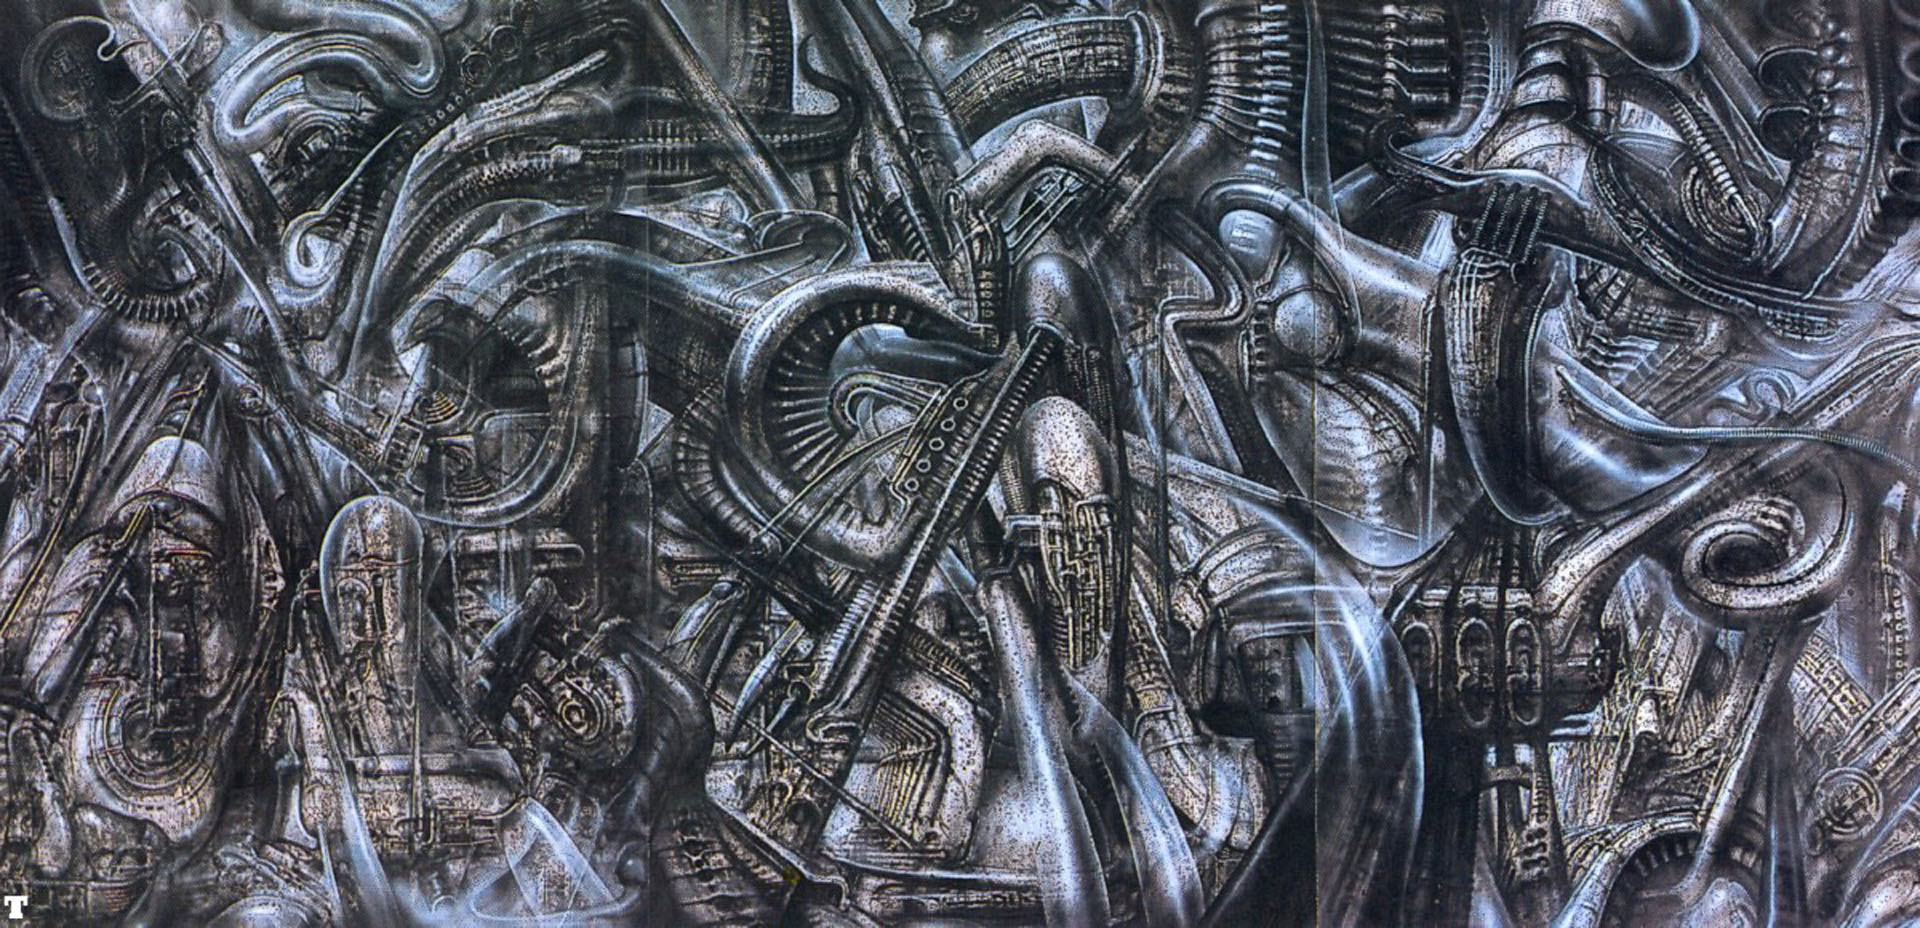 Newyorkcity Xxvi - Science Fiction H R Giger Wallpaper Image HTML code H.r. Giger Wallpaper